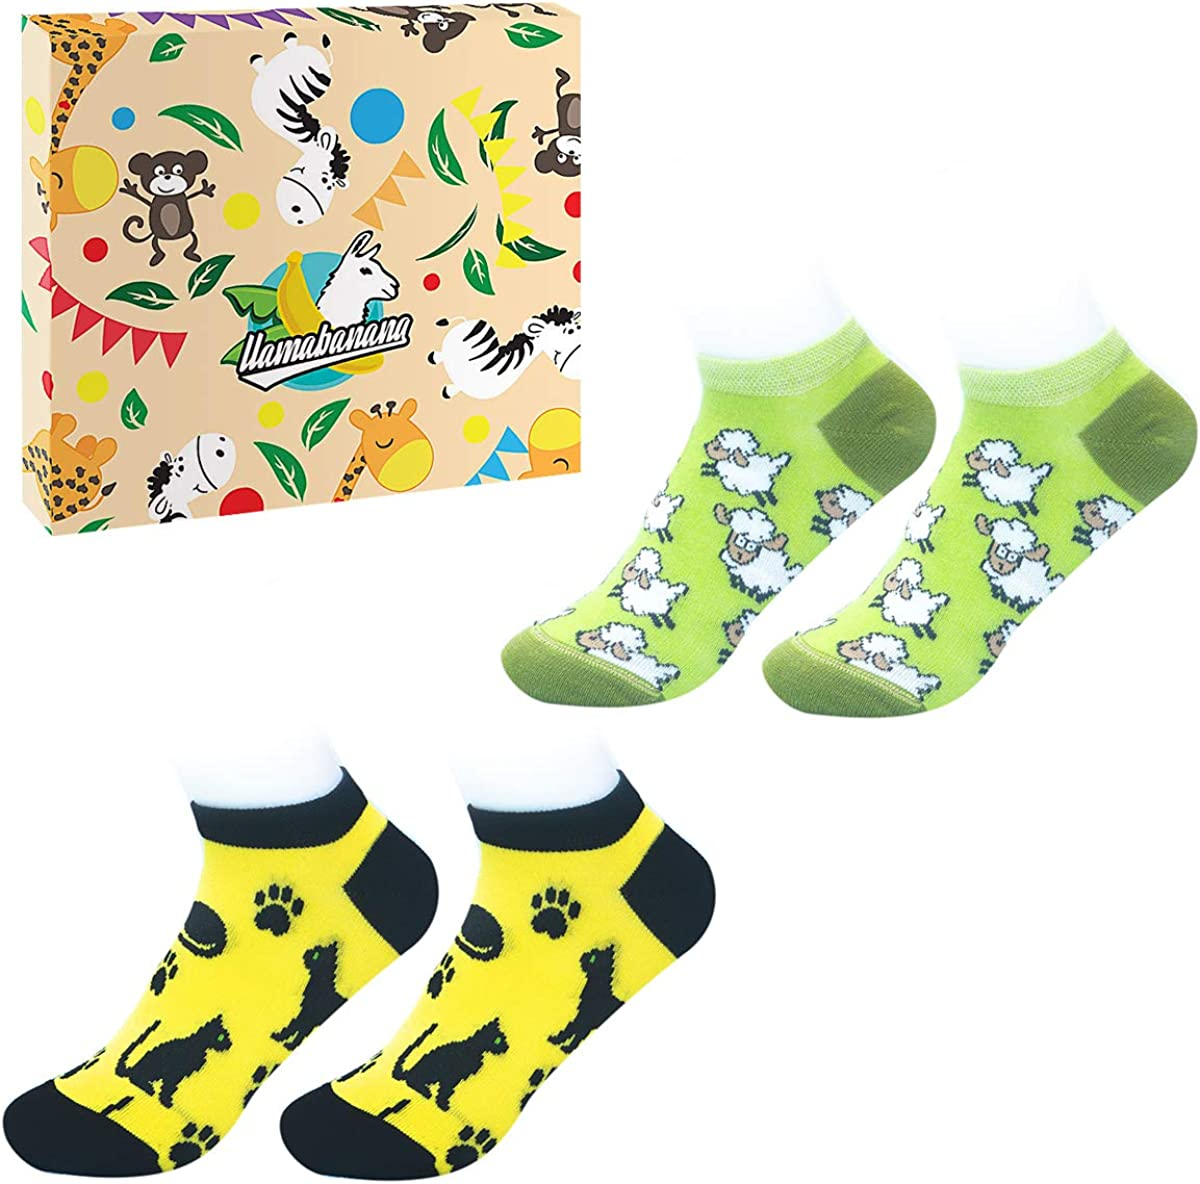 llamabanana/® 2 Pairs Kids Socks in Box Ankle Boys Girls Unisex Made in Europe Quality Cotton Colourful